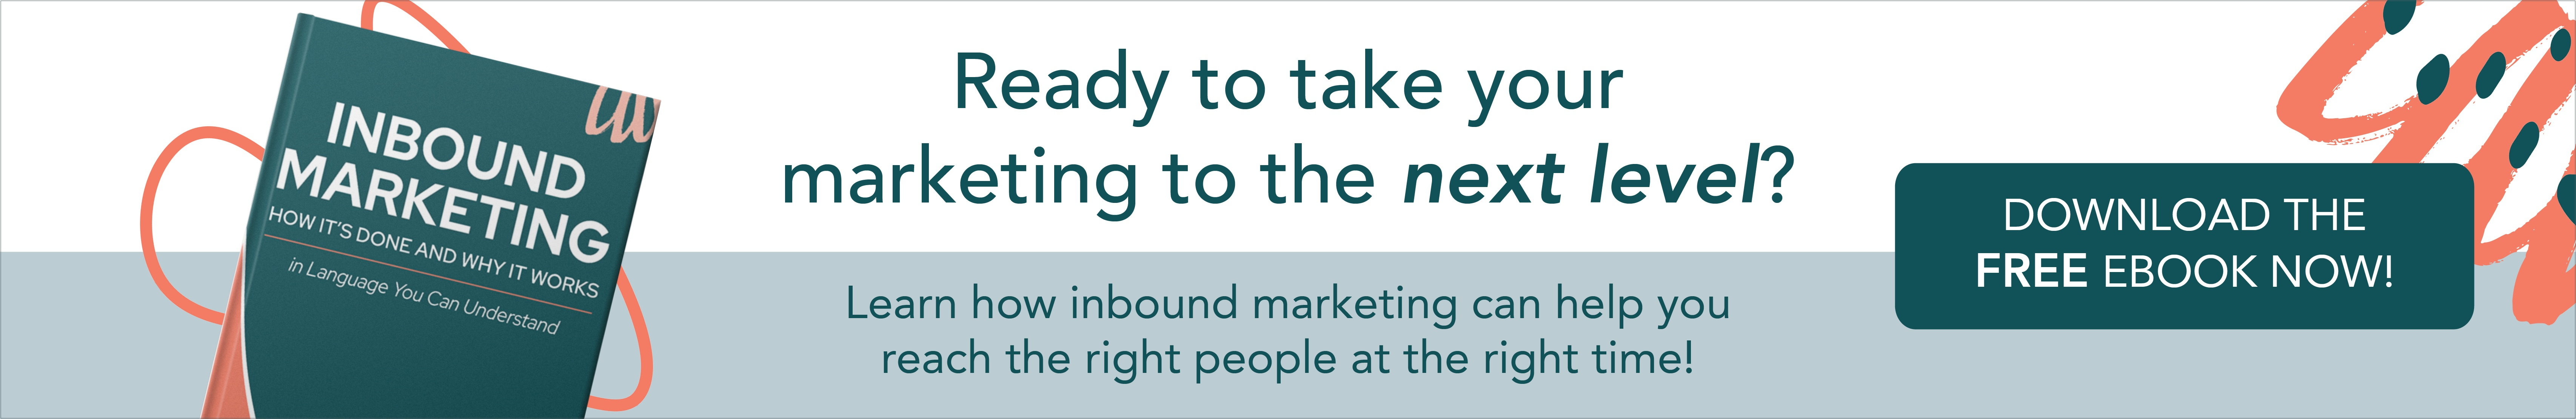 Inbound Marketing - How It's Done and Why It Works